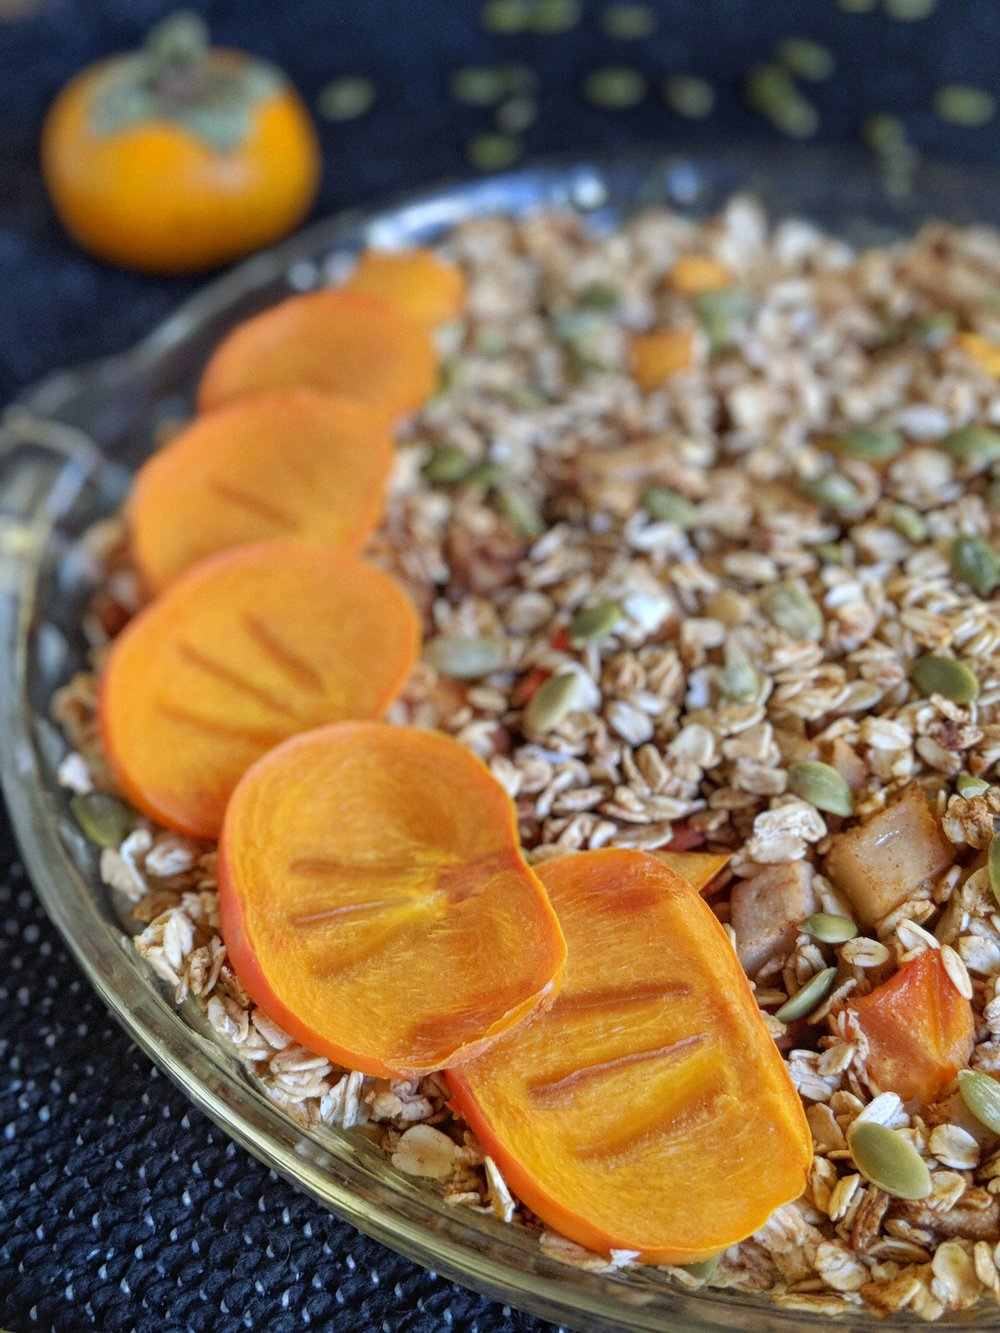 Pear, Persimmon, & Pepita Baked Oatmeal